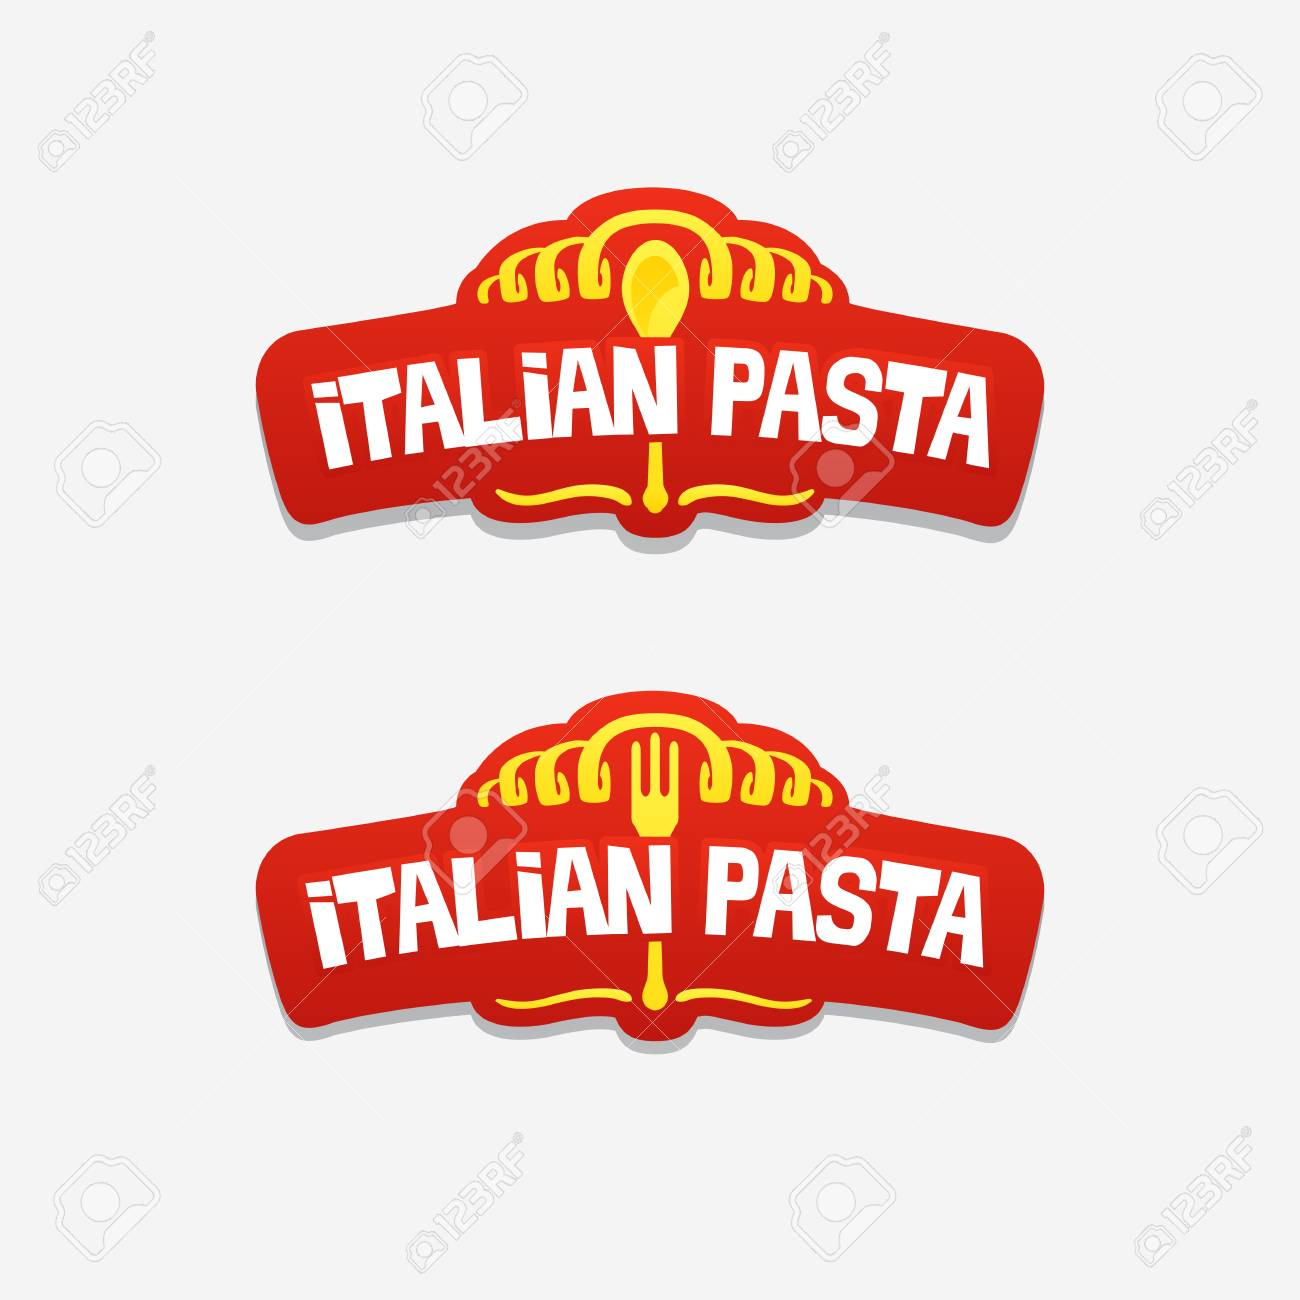 Italian Pasta Logo For A Cafe Or Restaurant Royalty Free Cliparts Vectors And Stock Illustration Image 100999024